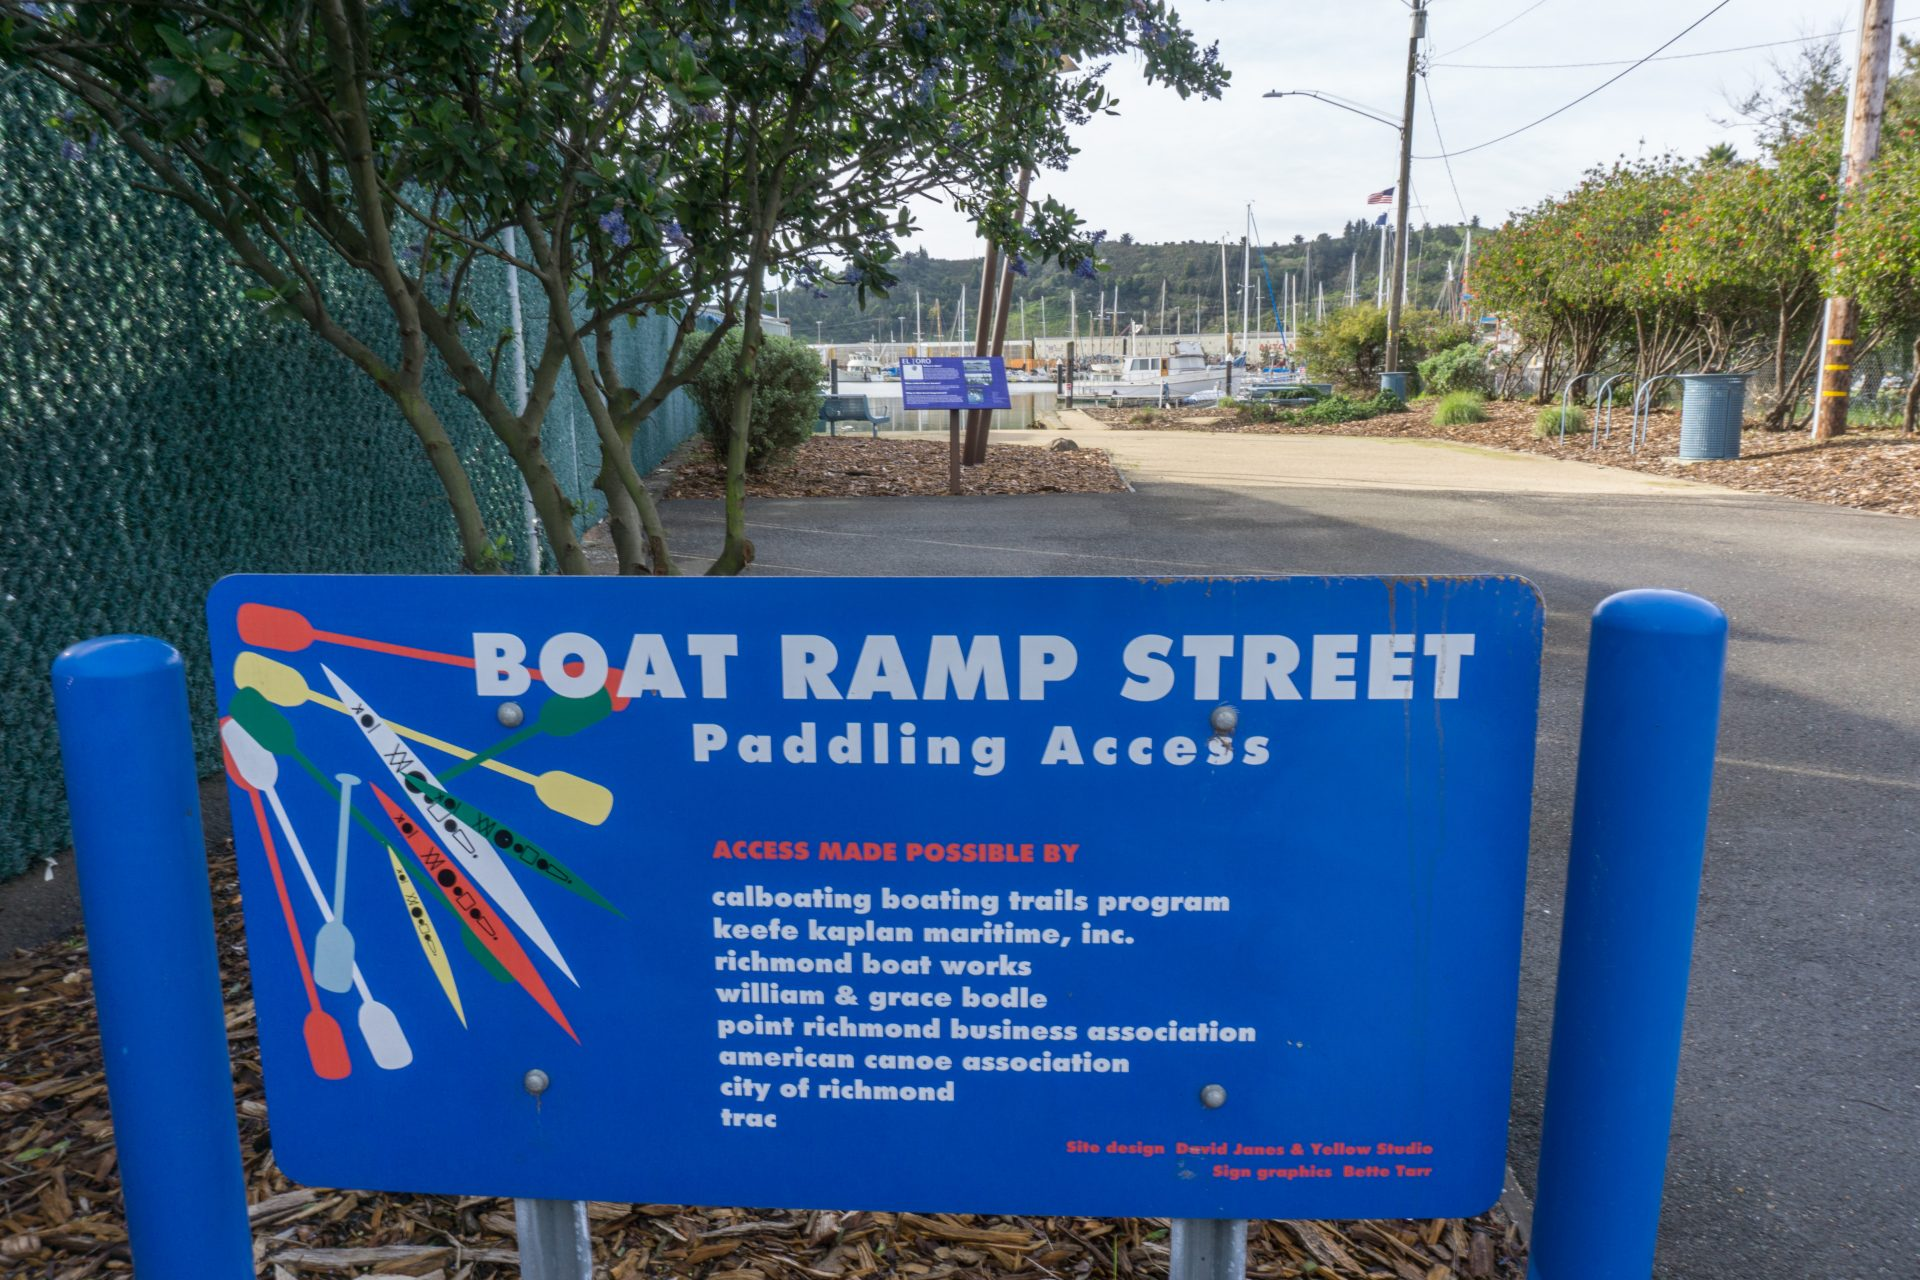 Sign for Boat Ramp Street Paddling Access, with funder credits